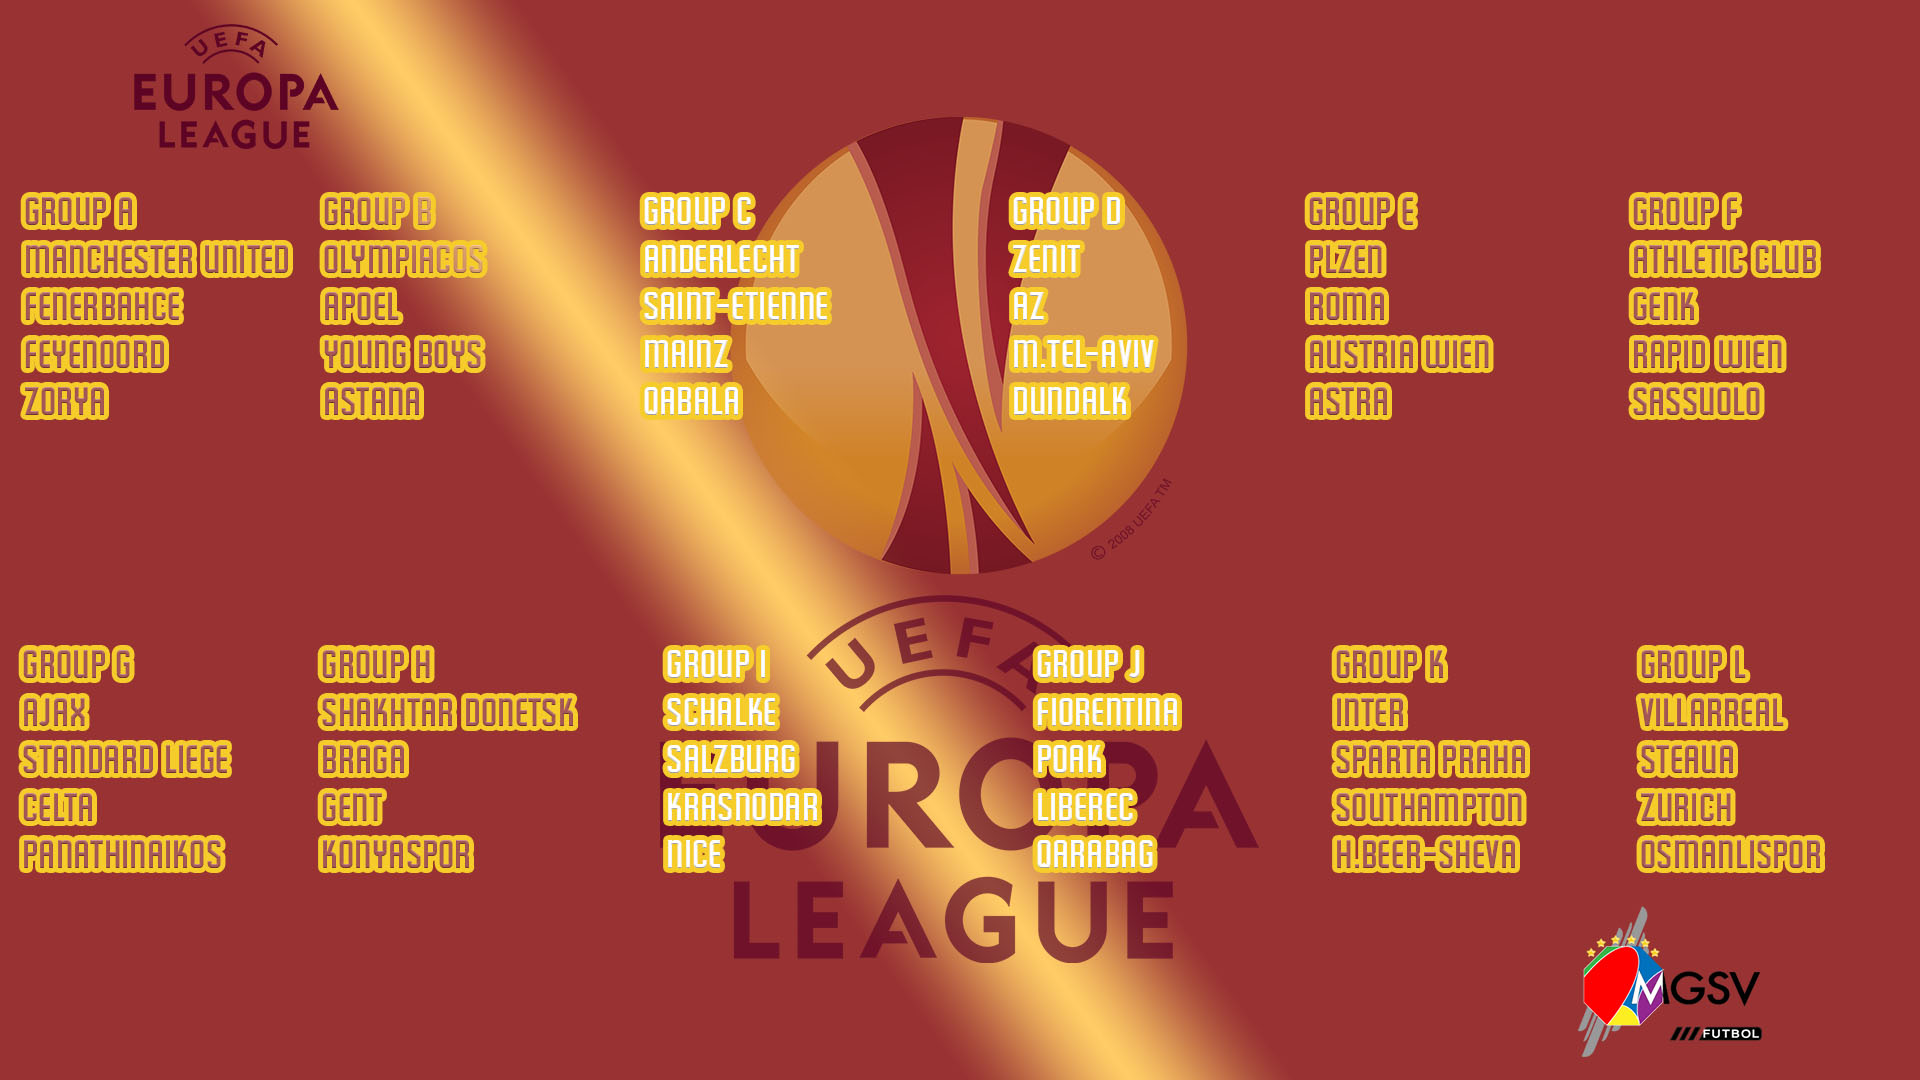 uefa europa league qualifikation